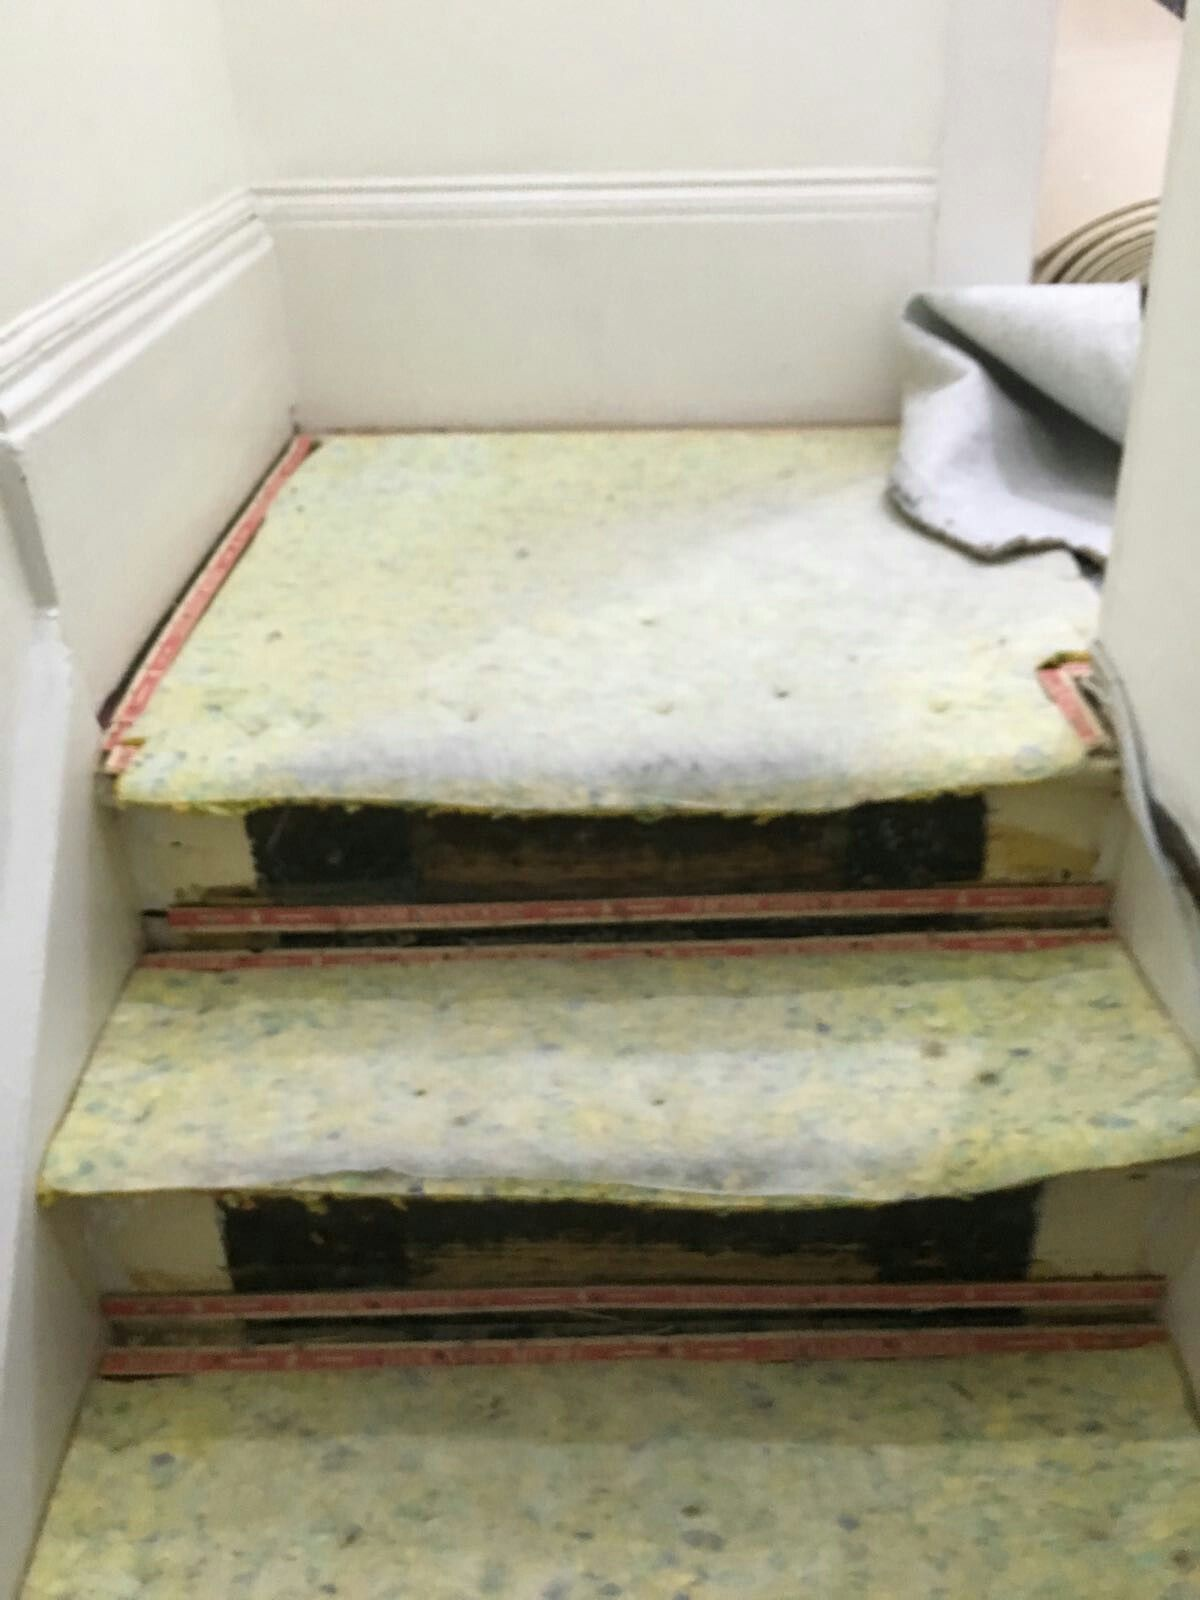 Pin By Cavendish Devere On Hall Stairs And Landing Carpet Fitting West Norwood Carpet Fitting Storage Bench Decor